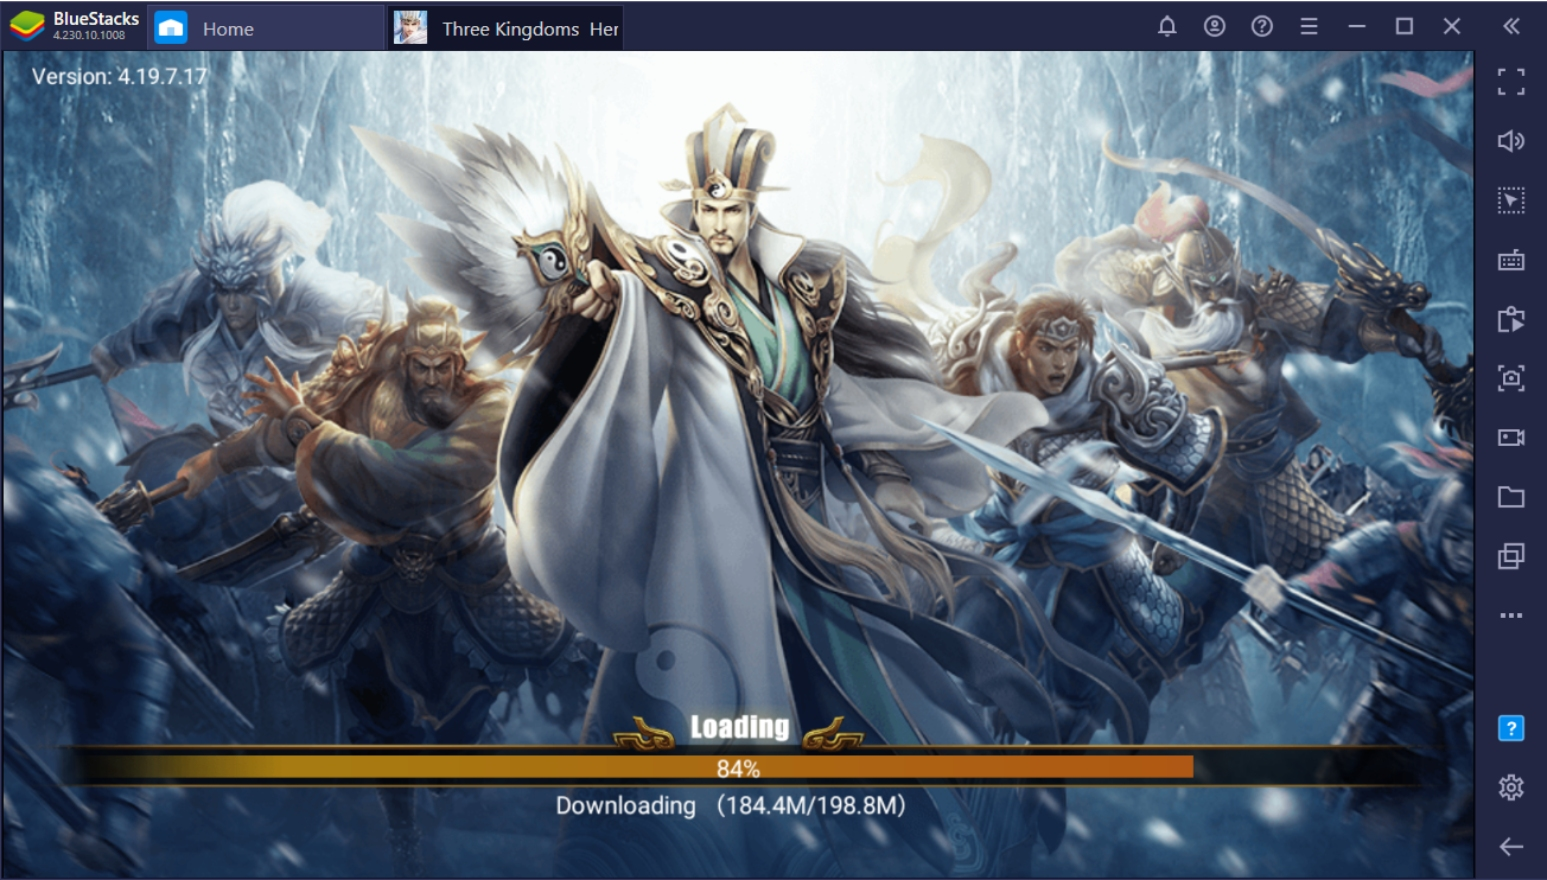 How To Play Three Kingdoms: Heroes Saga On PC With BlueStacks